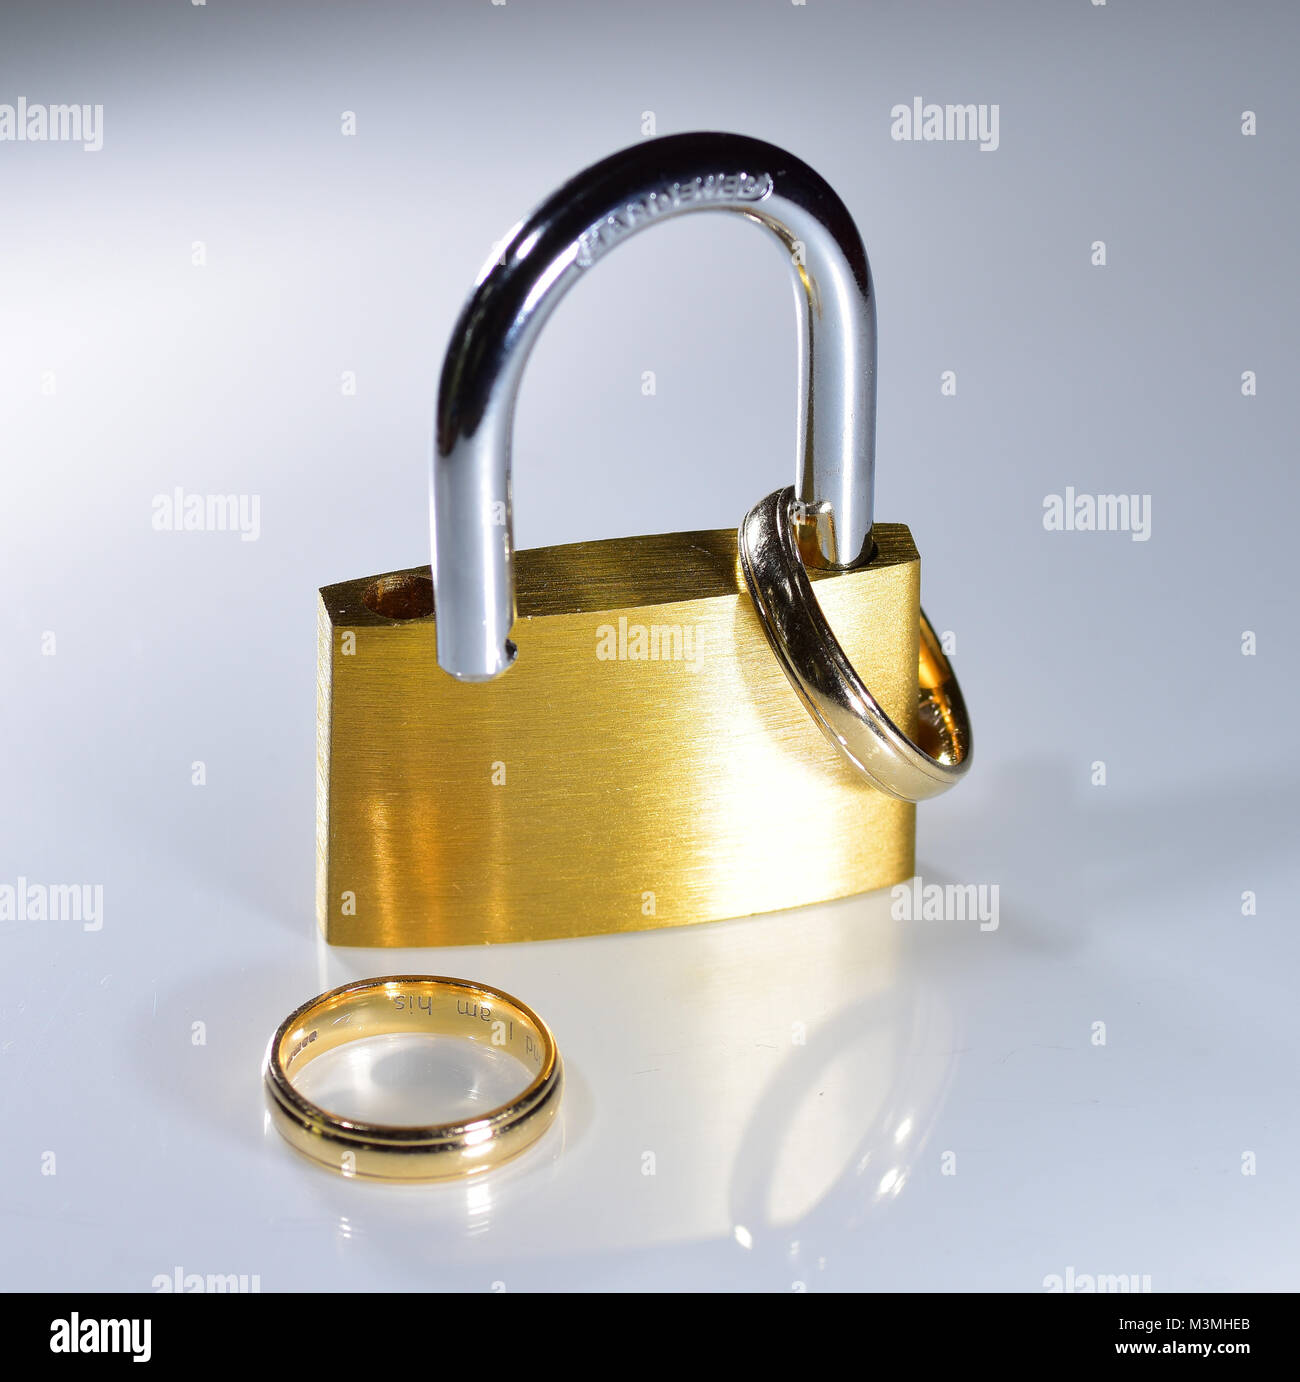 stock depositphotos photo wedding rings gold broken